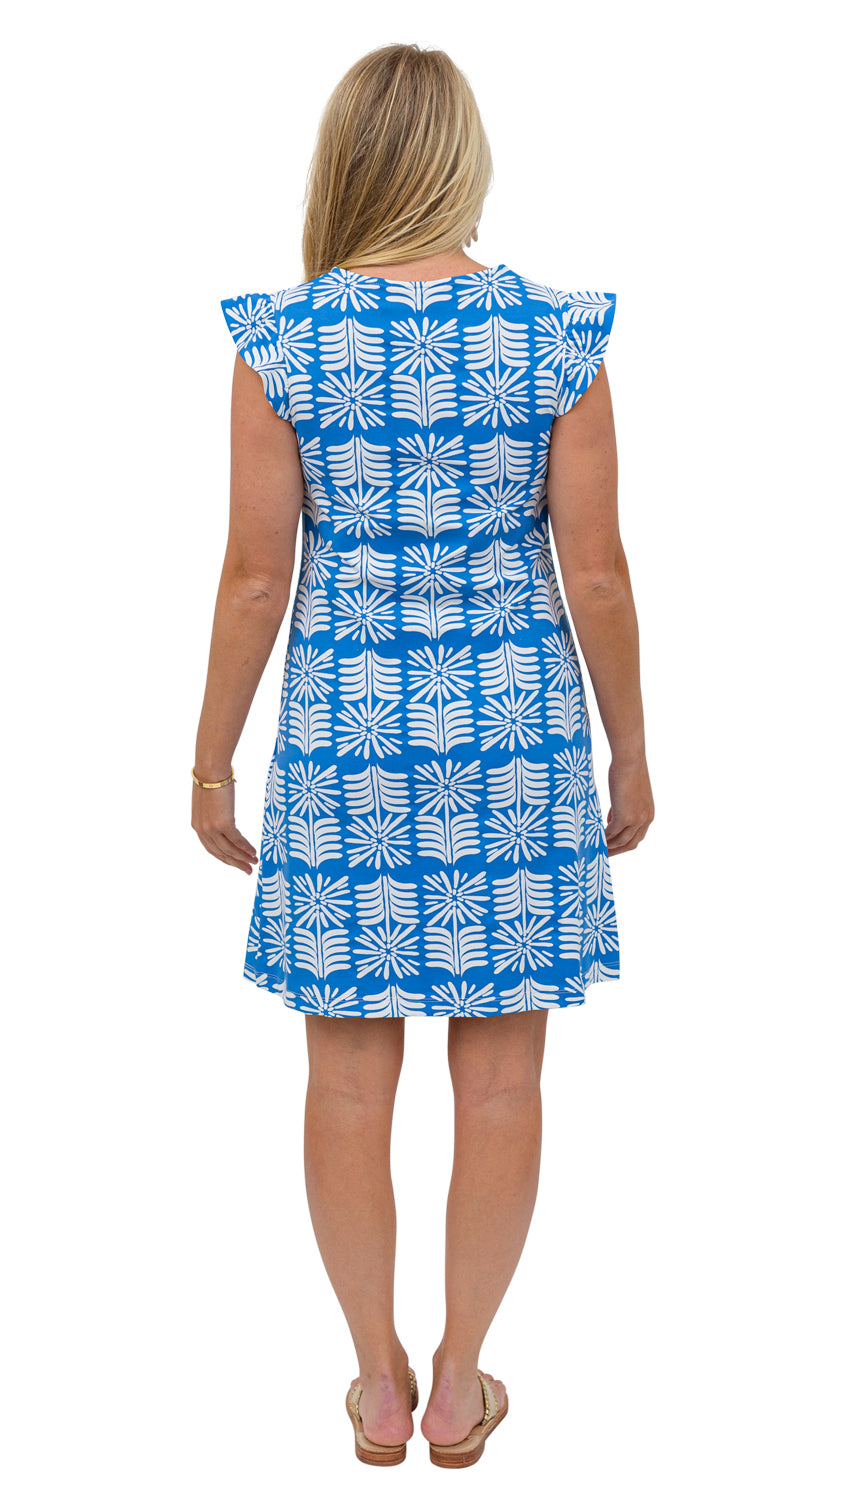 Jojo Dress - Blue/White Montauk Daisy